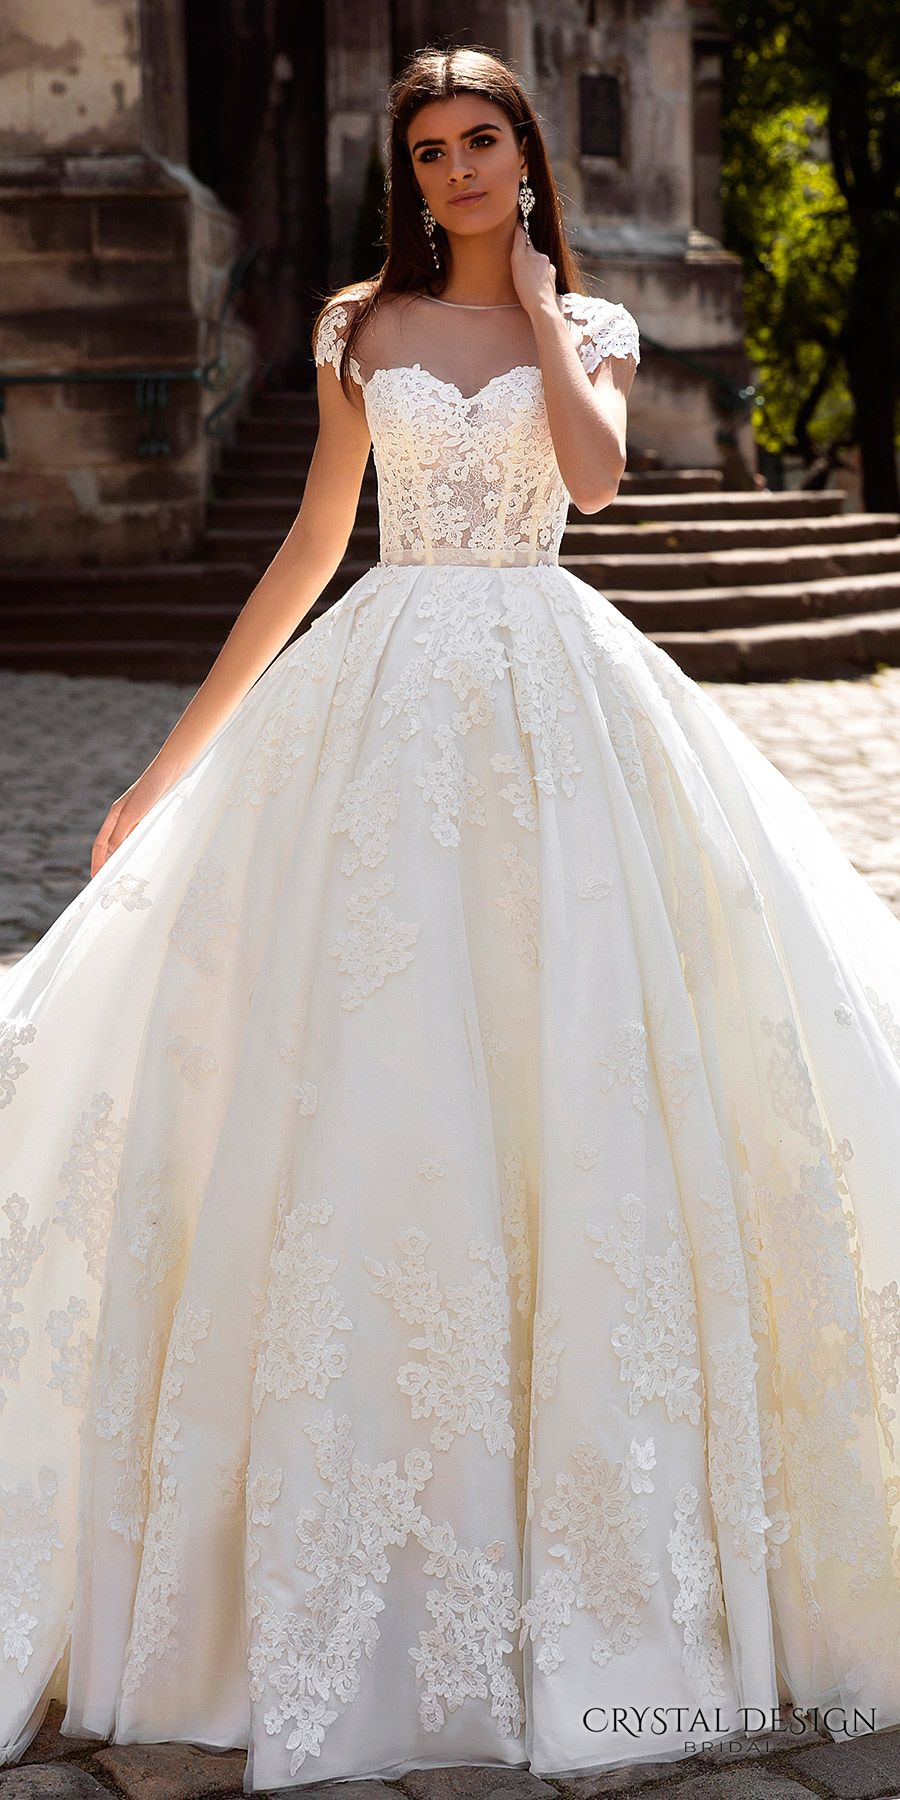 Popular wedding dresses in 2016 part 1 ball gowns a for Princess corset wedding dresses